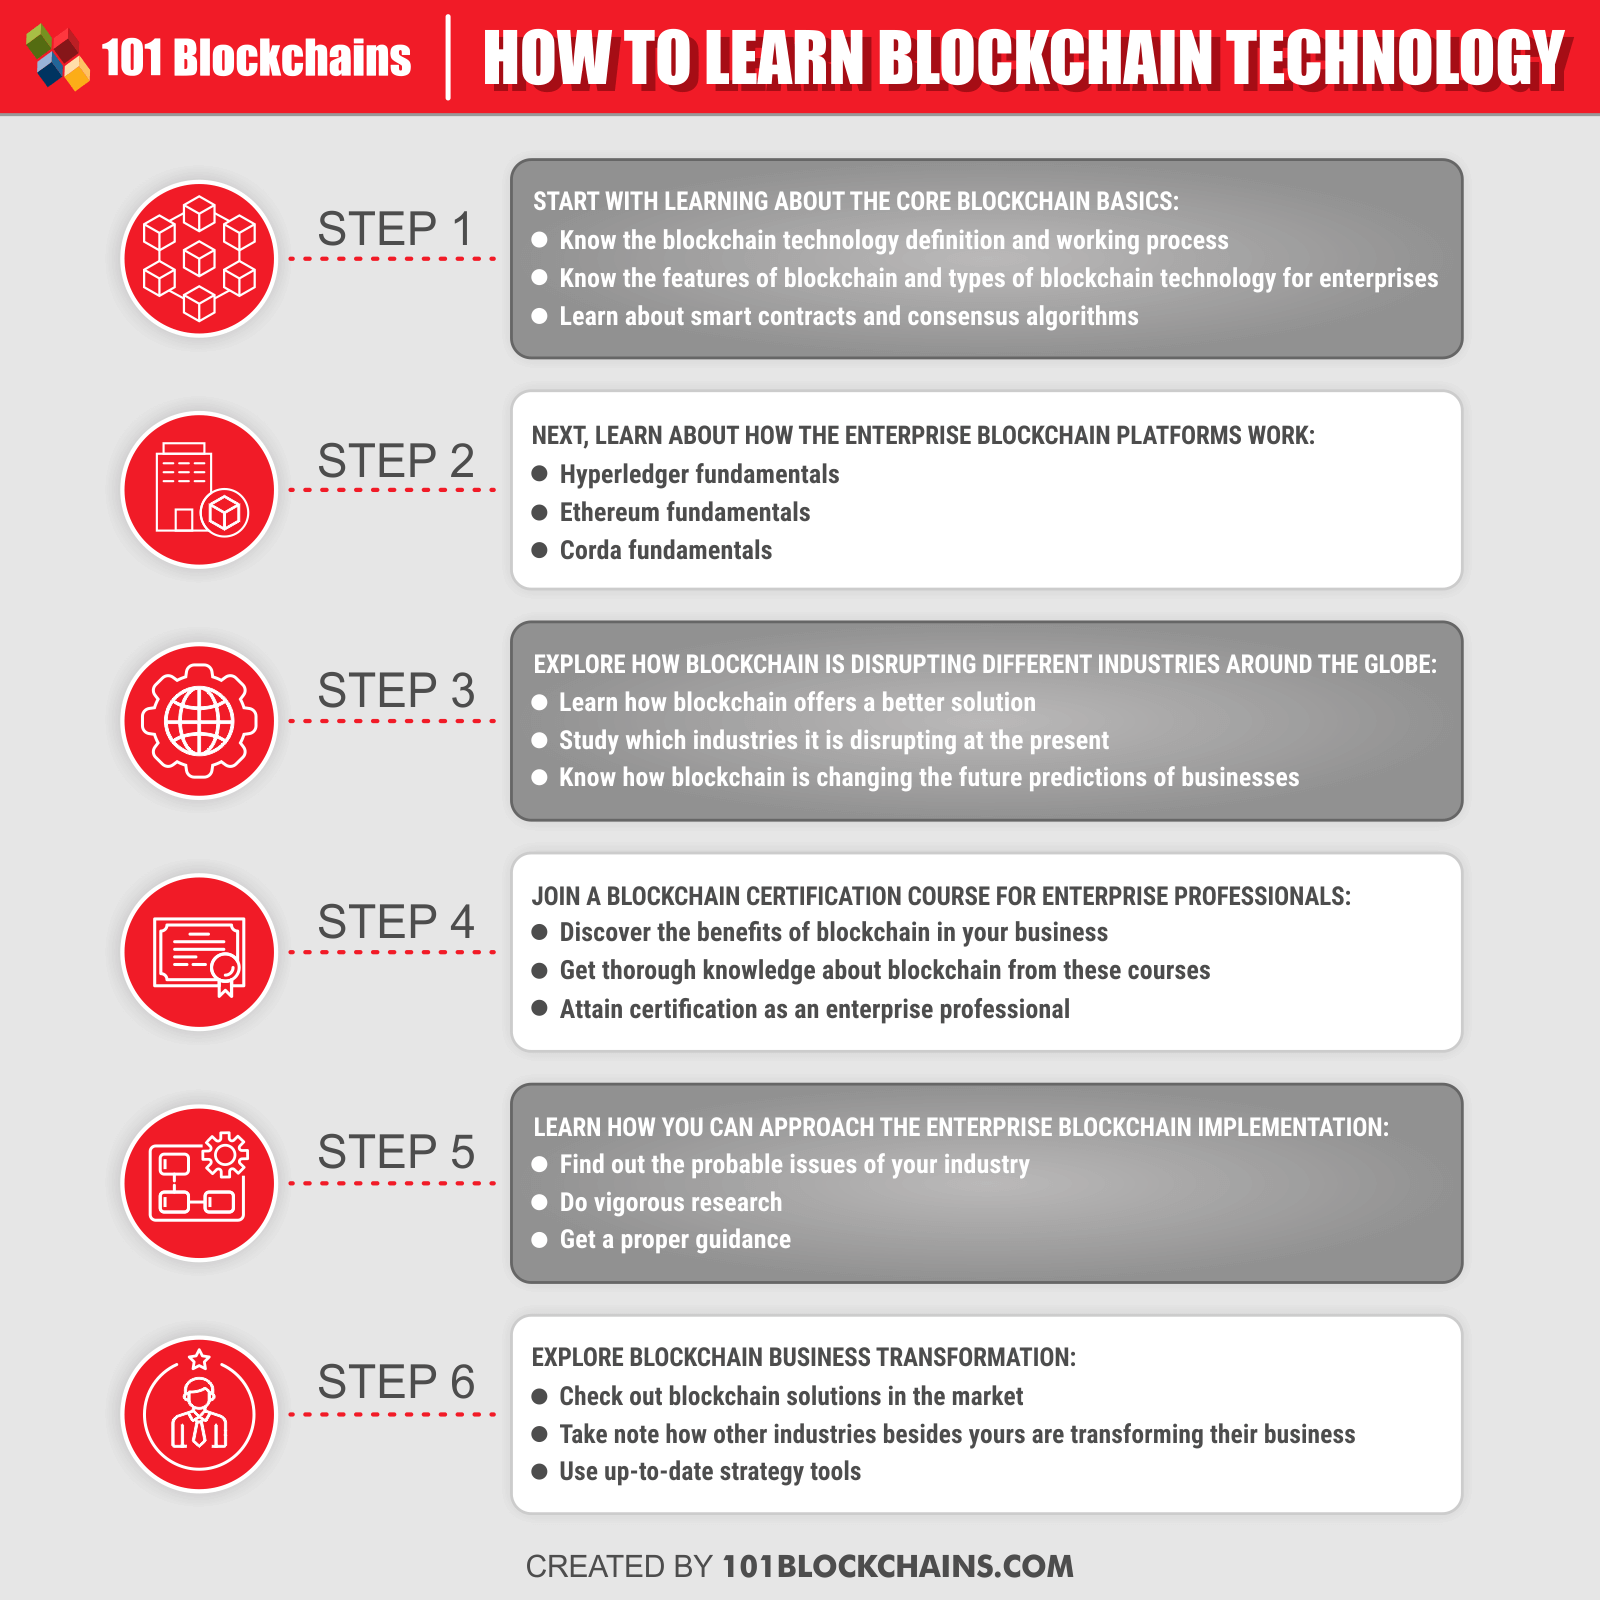 HOW TO LEARN BLOCKCHAIN